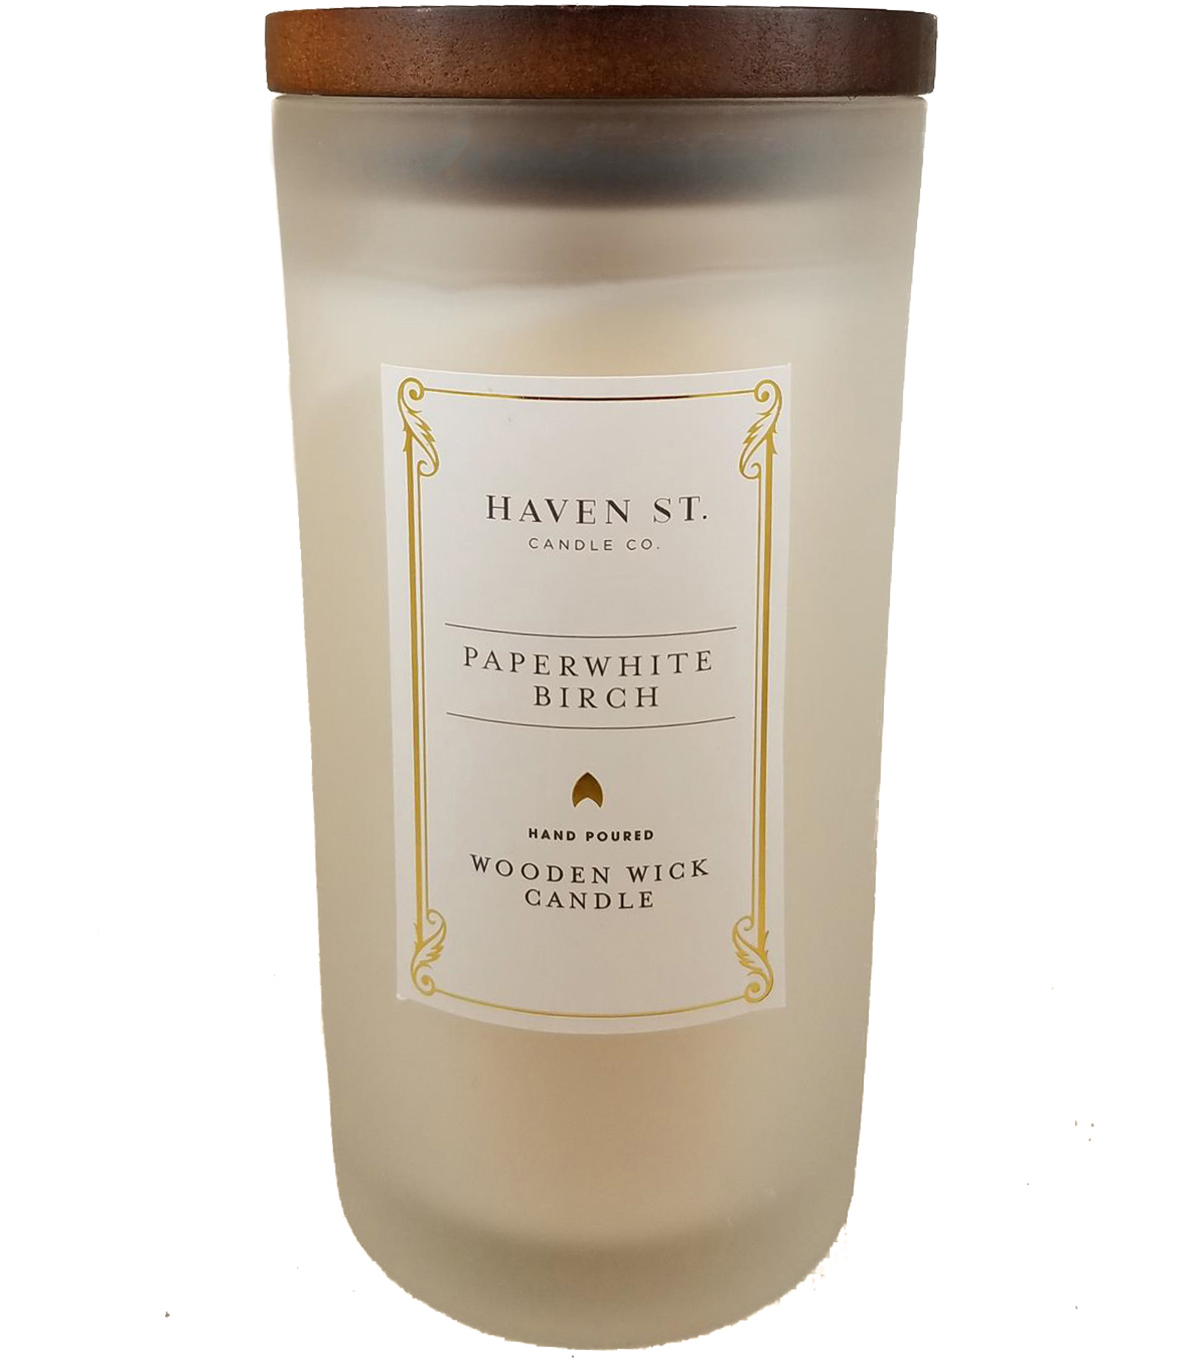 Haven St. Candle Co. 11 oz. Paperwhite Birch Scented Wooden Wick Candle